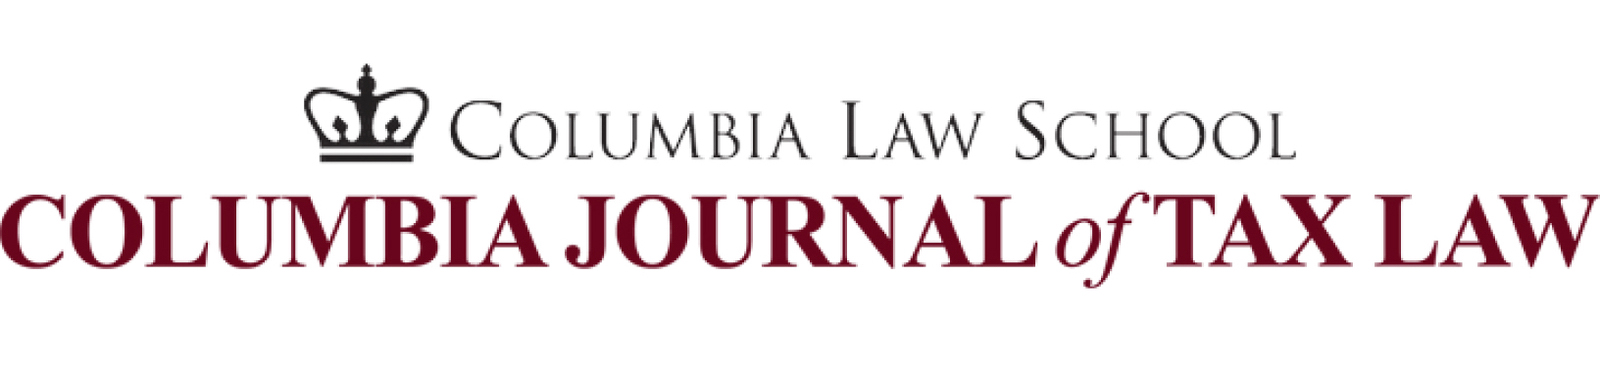 link to Columbia Journal of Tax Law site